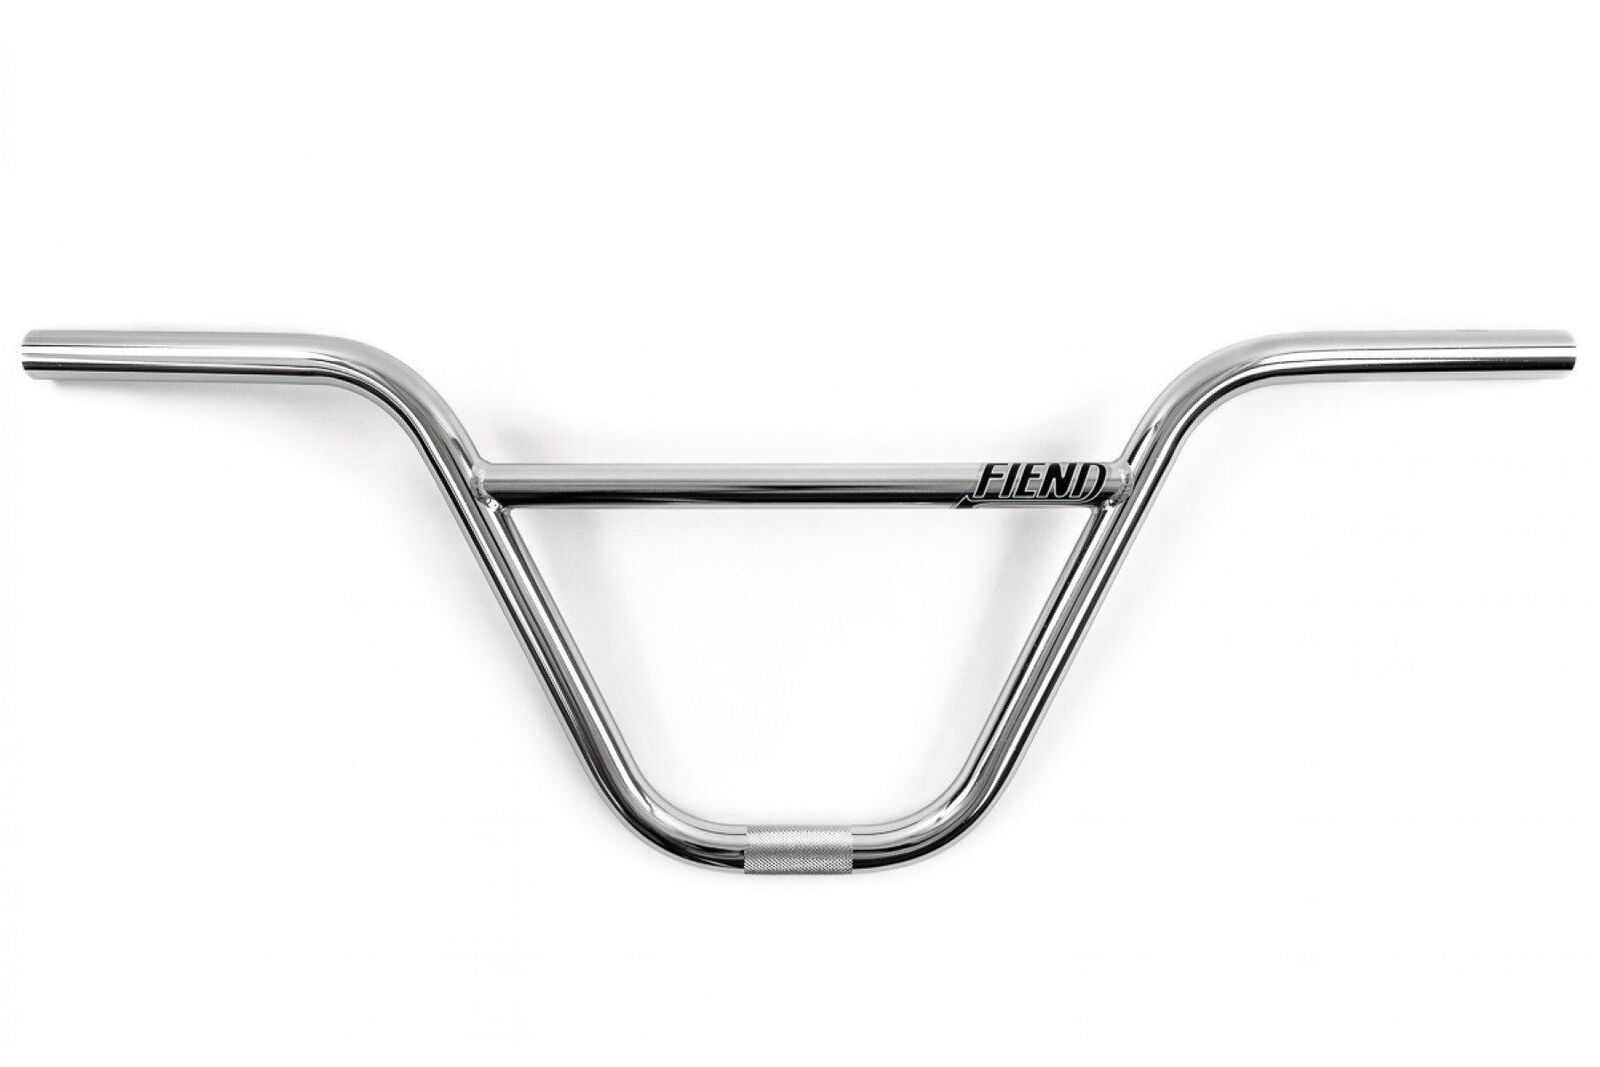 Fiend Reynolds BMX Bar 8.75  Chrome